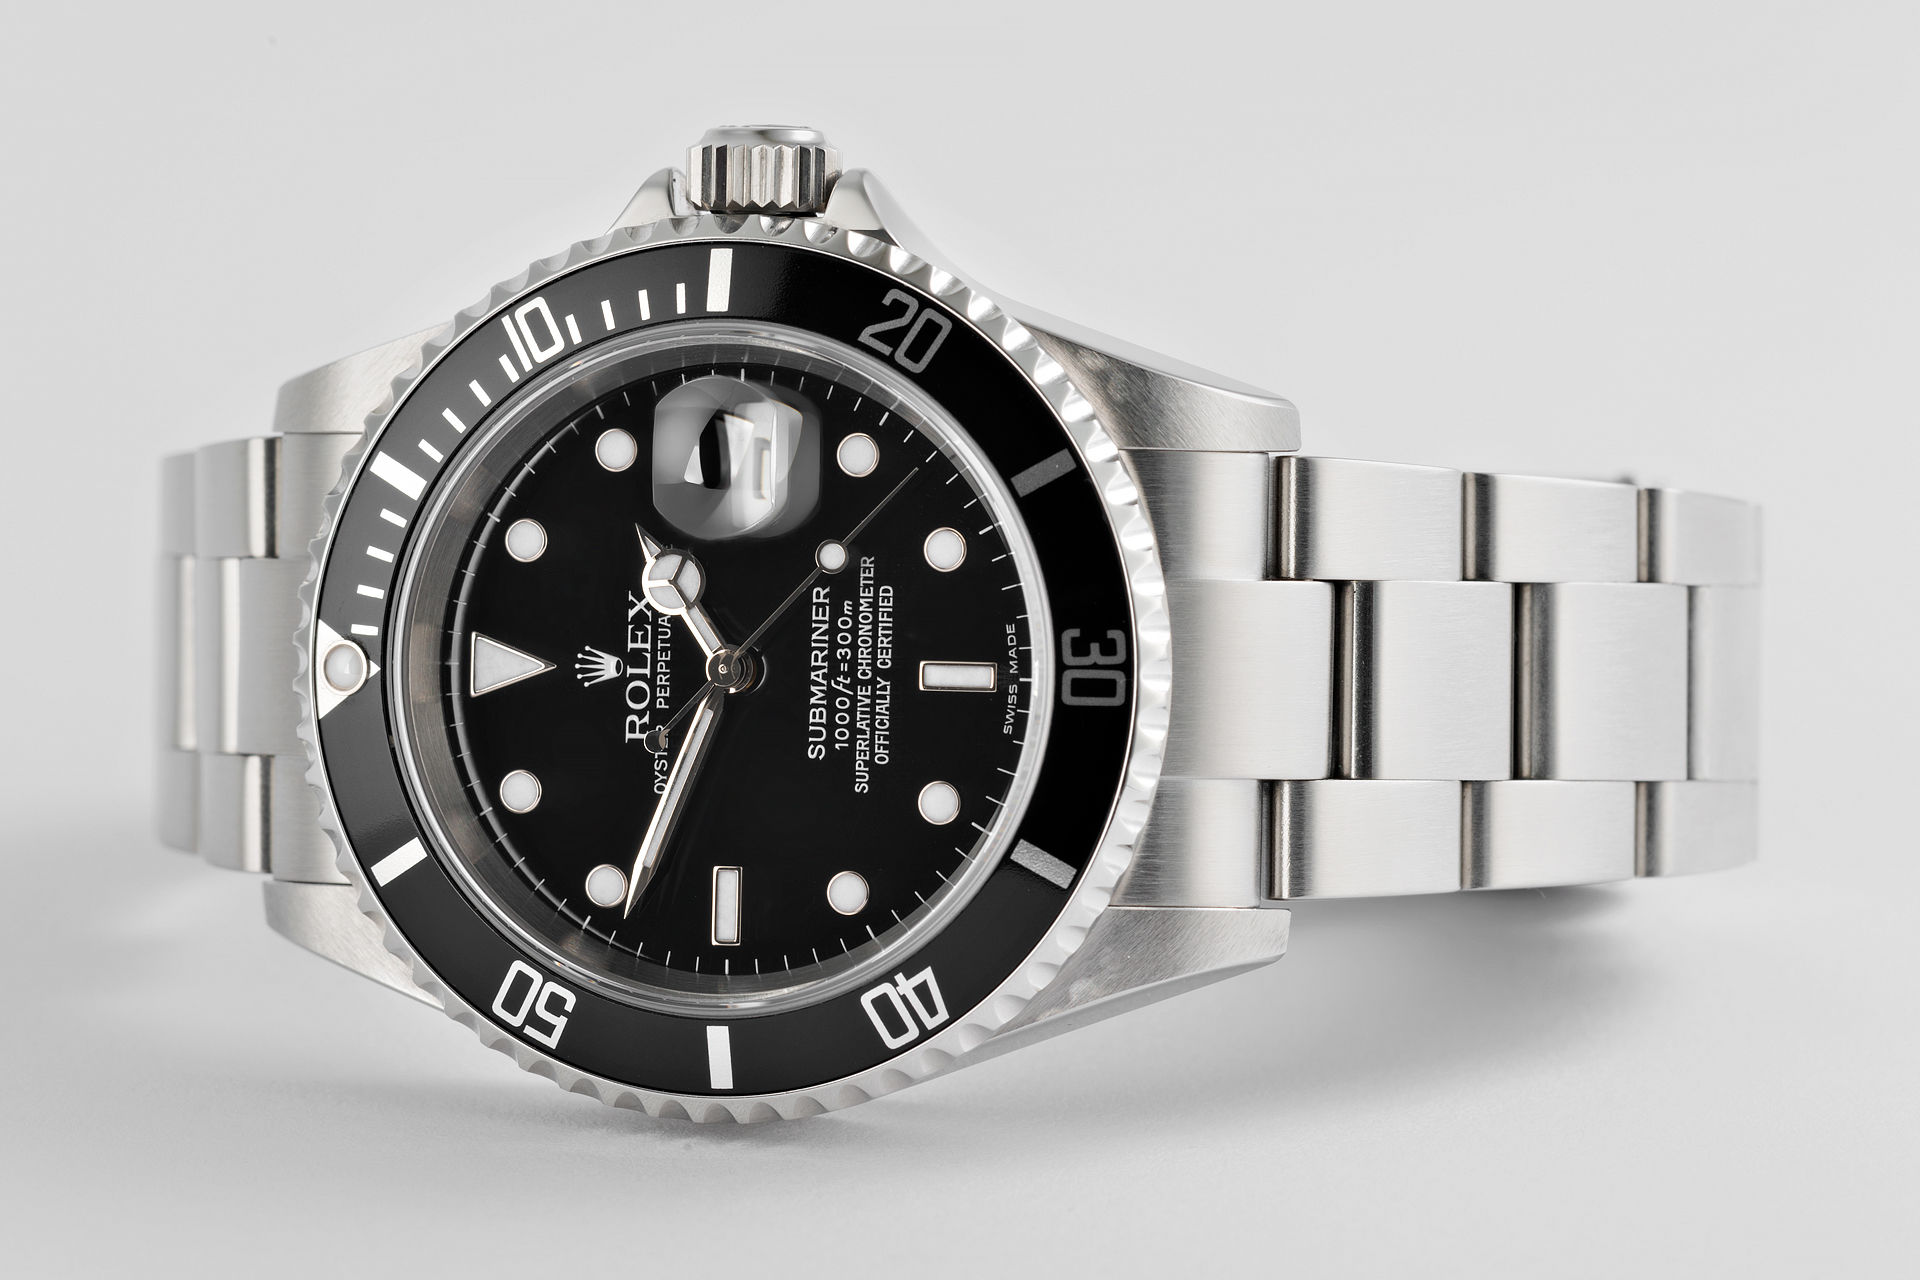 ref 16610 | Complete Set 'F' Serial | Rolex Submariner Date